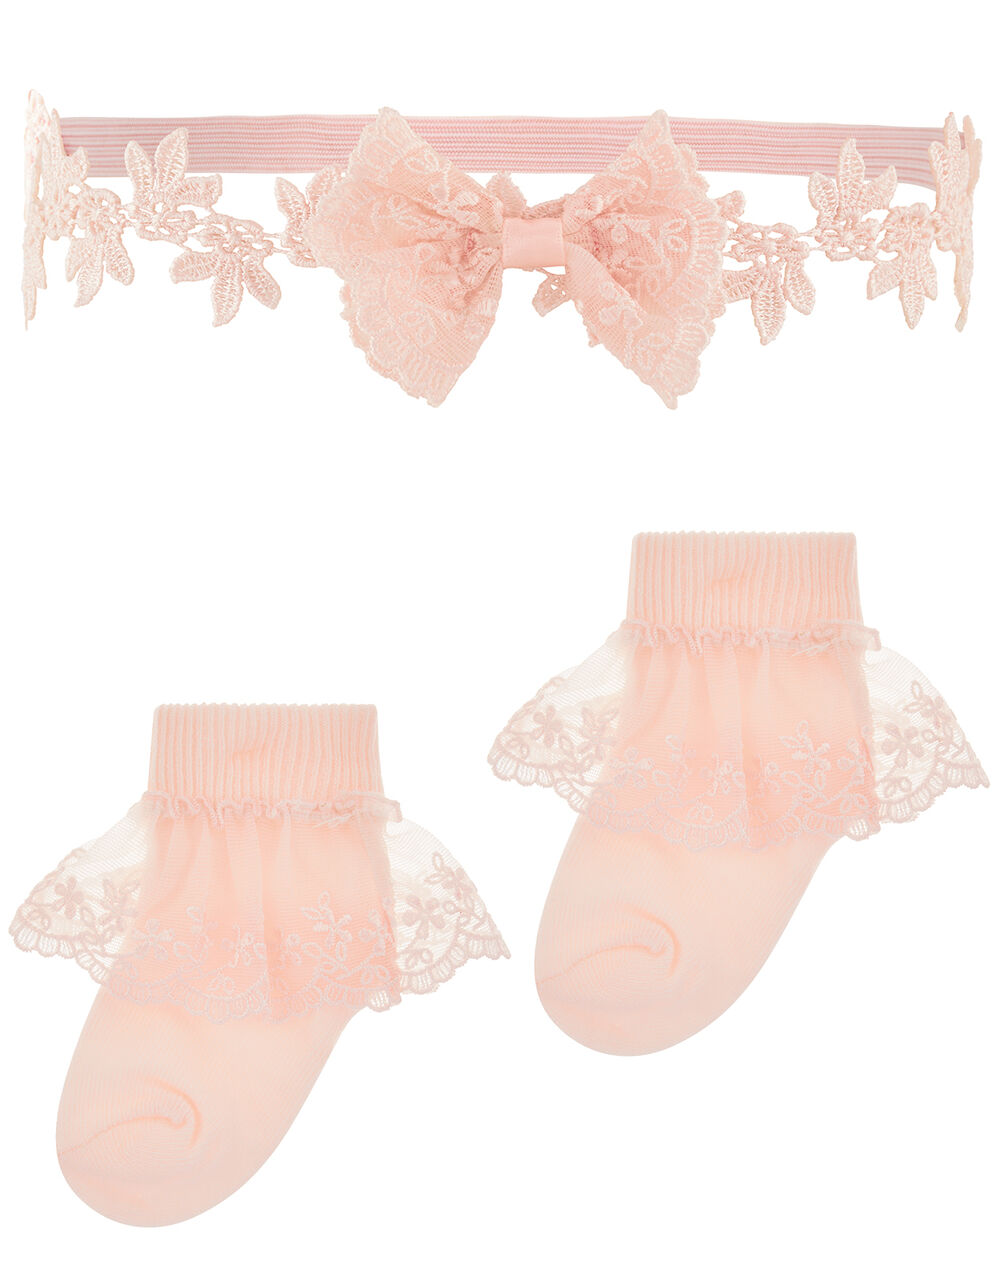 Baby Lacey Butterfly Sock and Bando Set, Pink (PINK), large